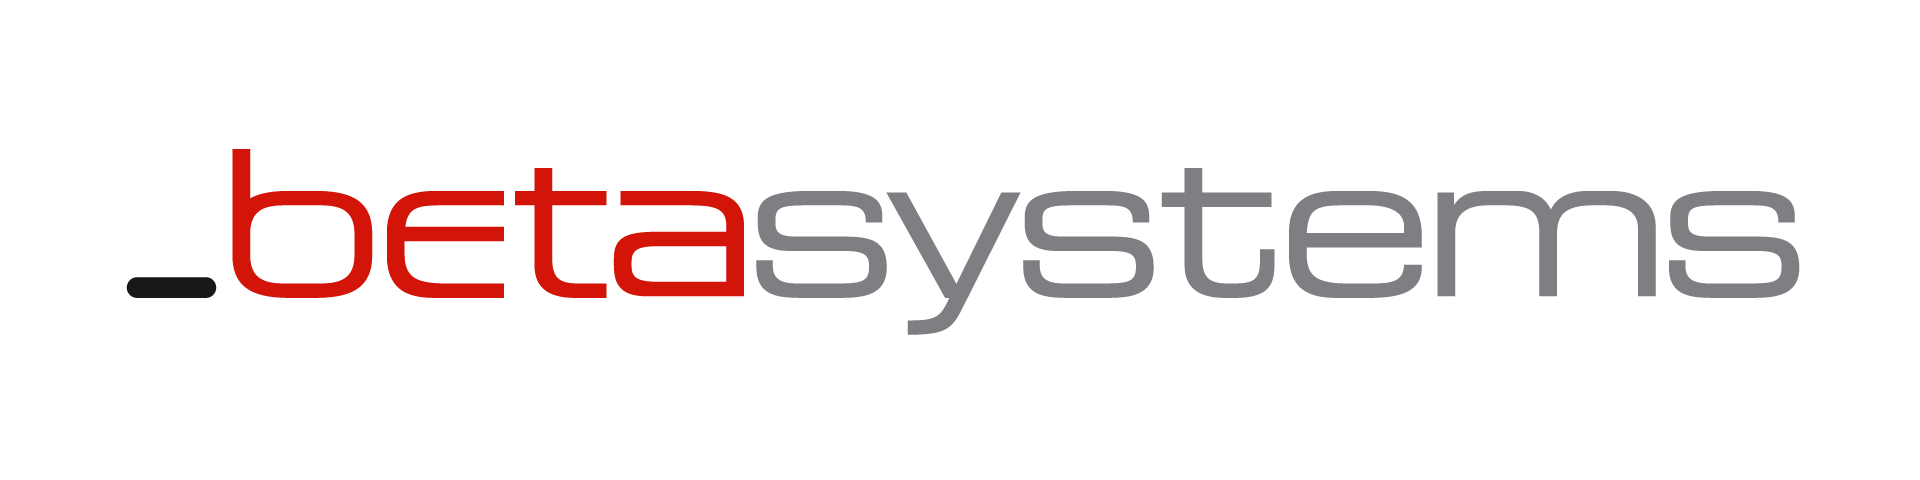 Beta Systems Identity and Access Management logo